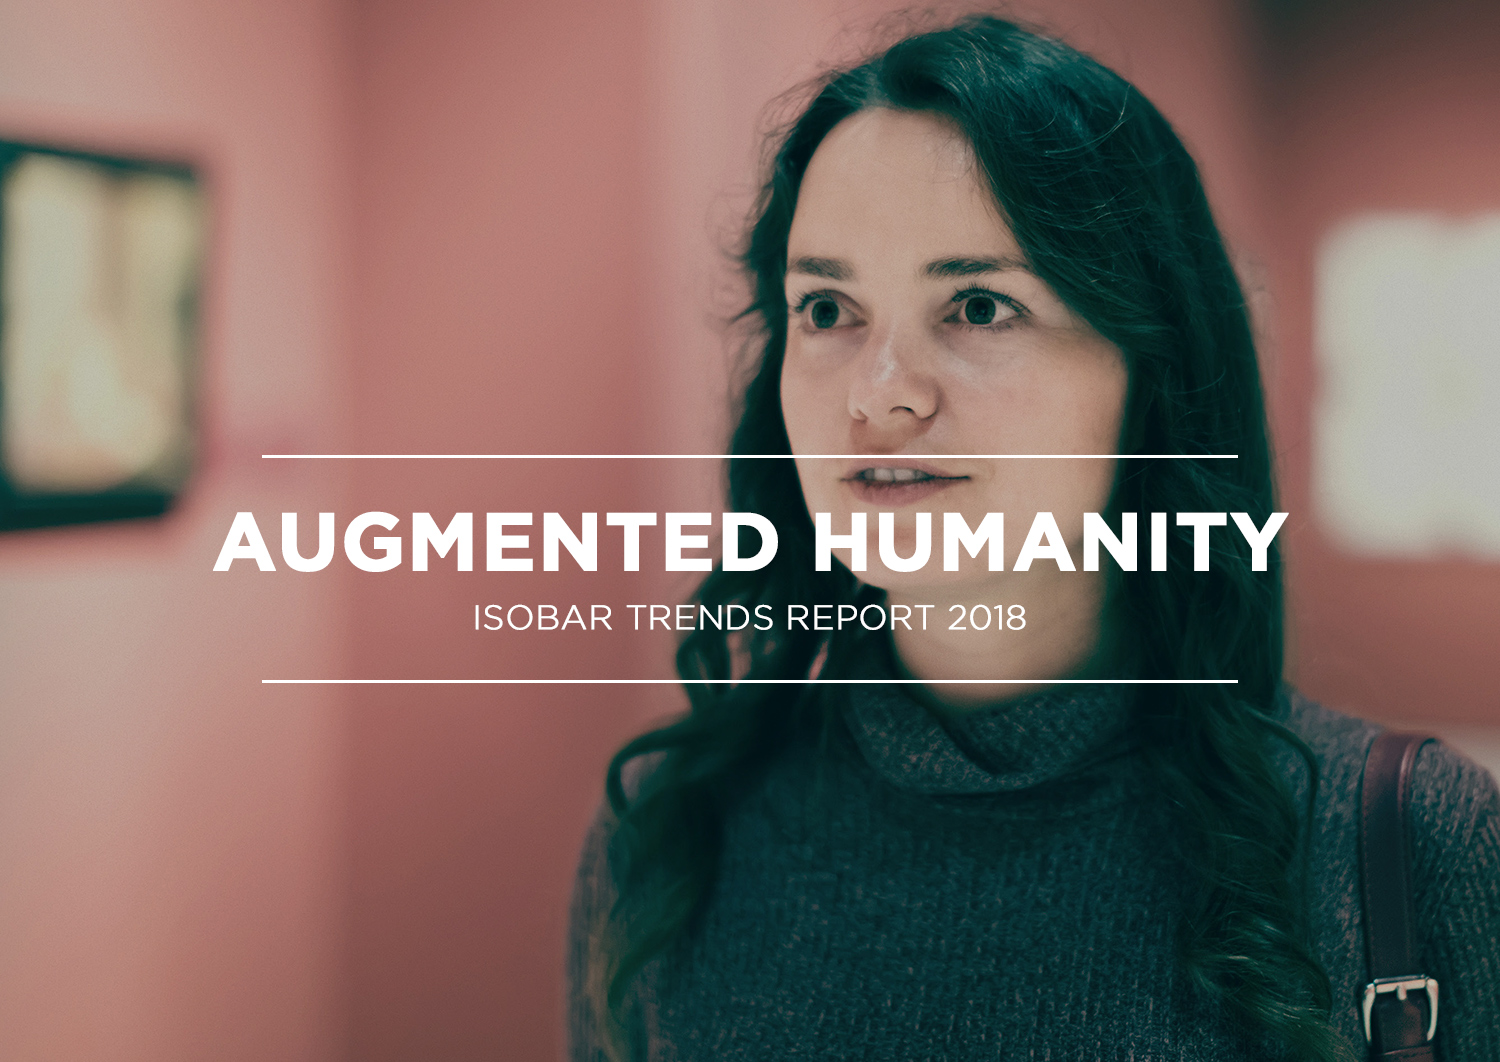 Augmented Humanity: Isobar Trends Report 2018